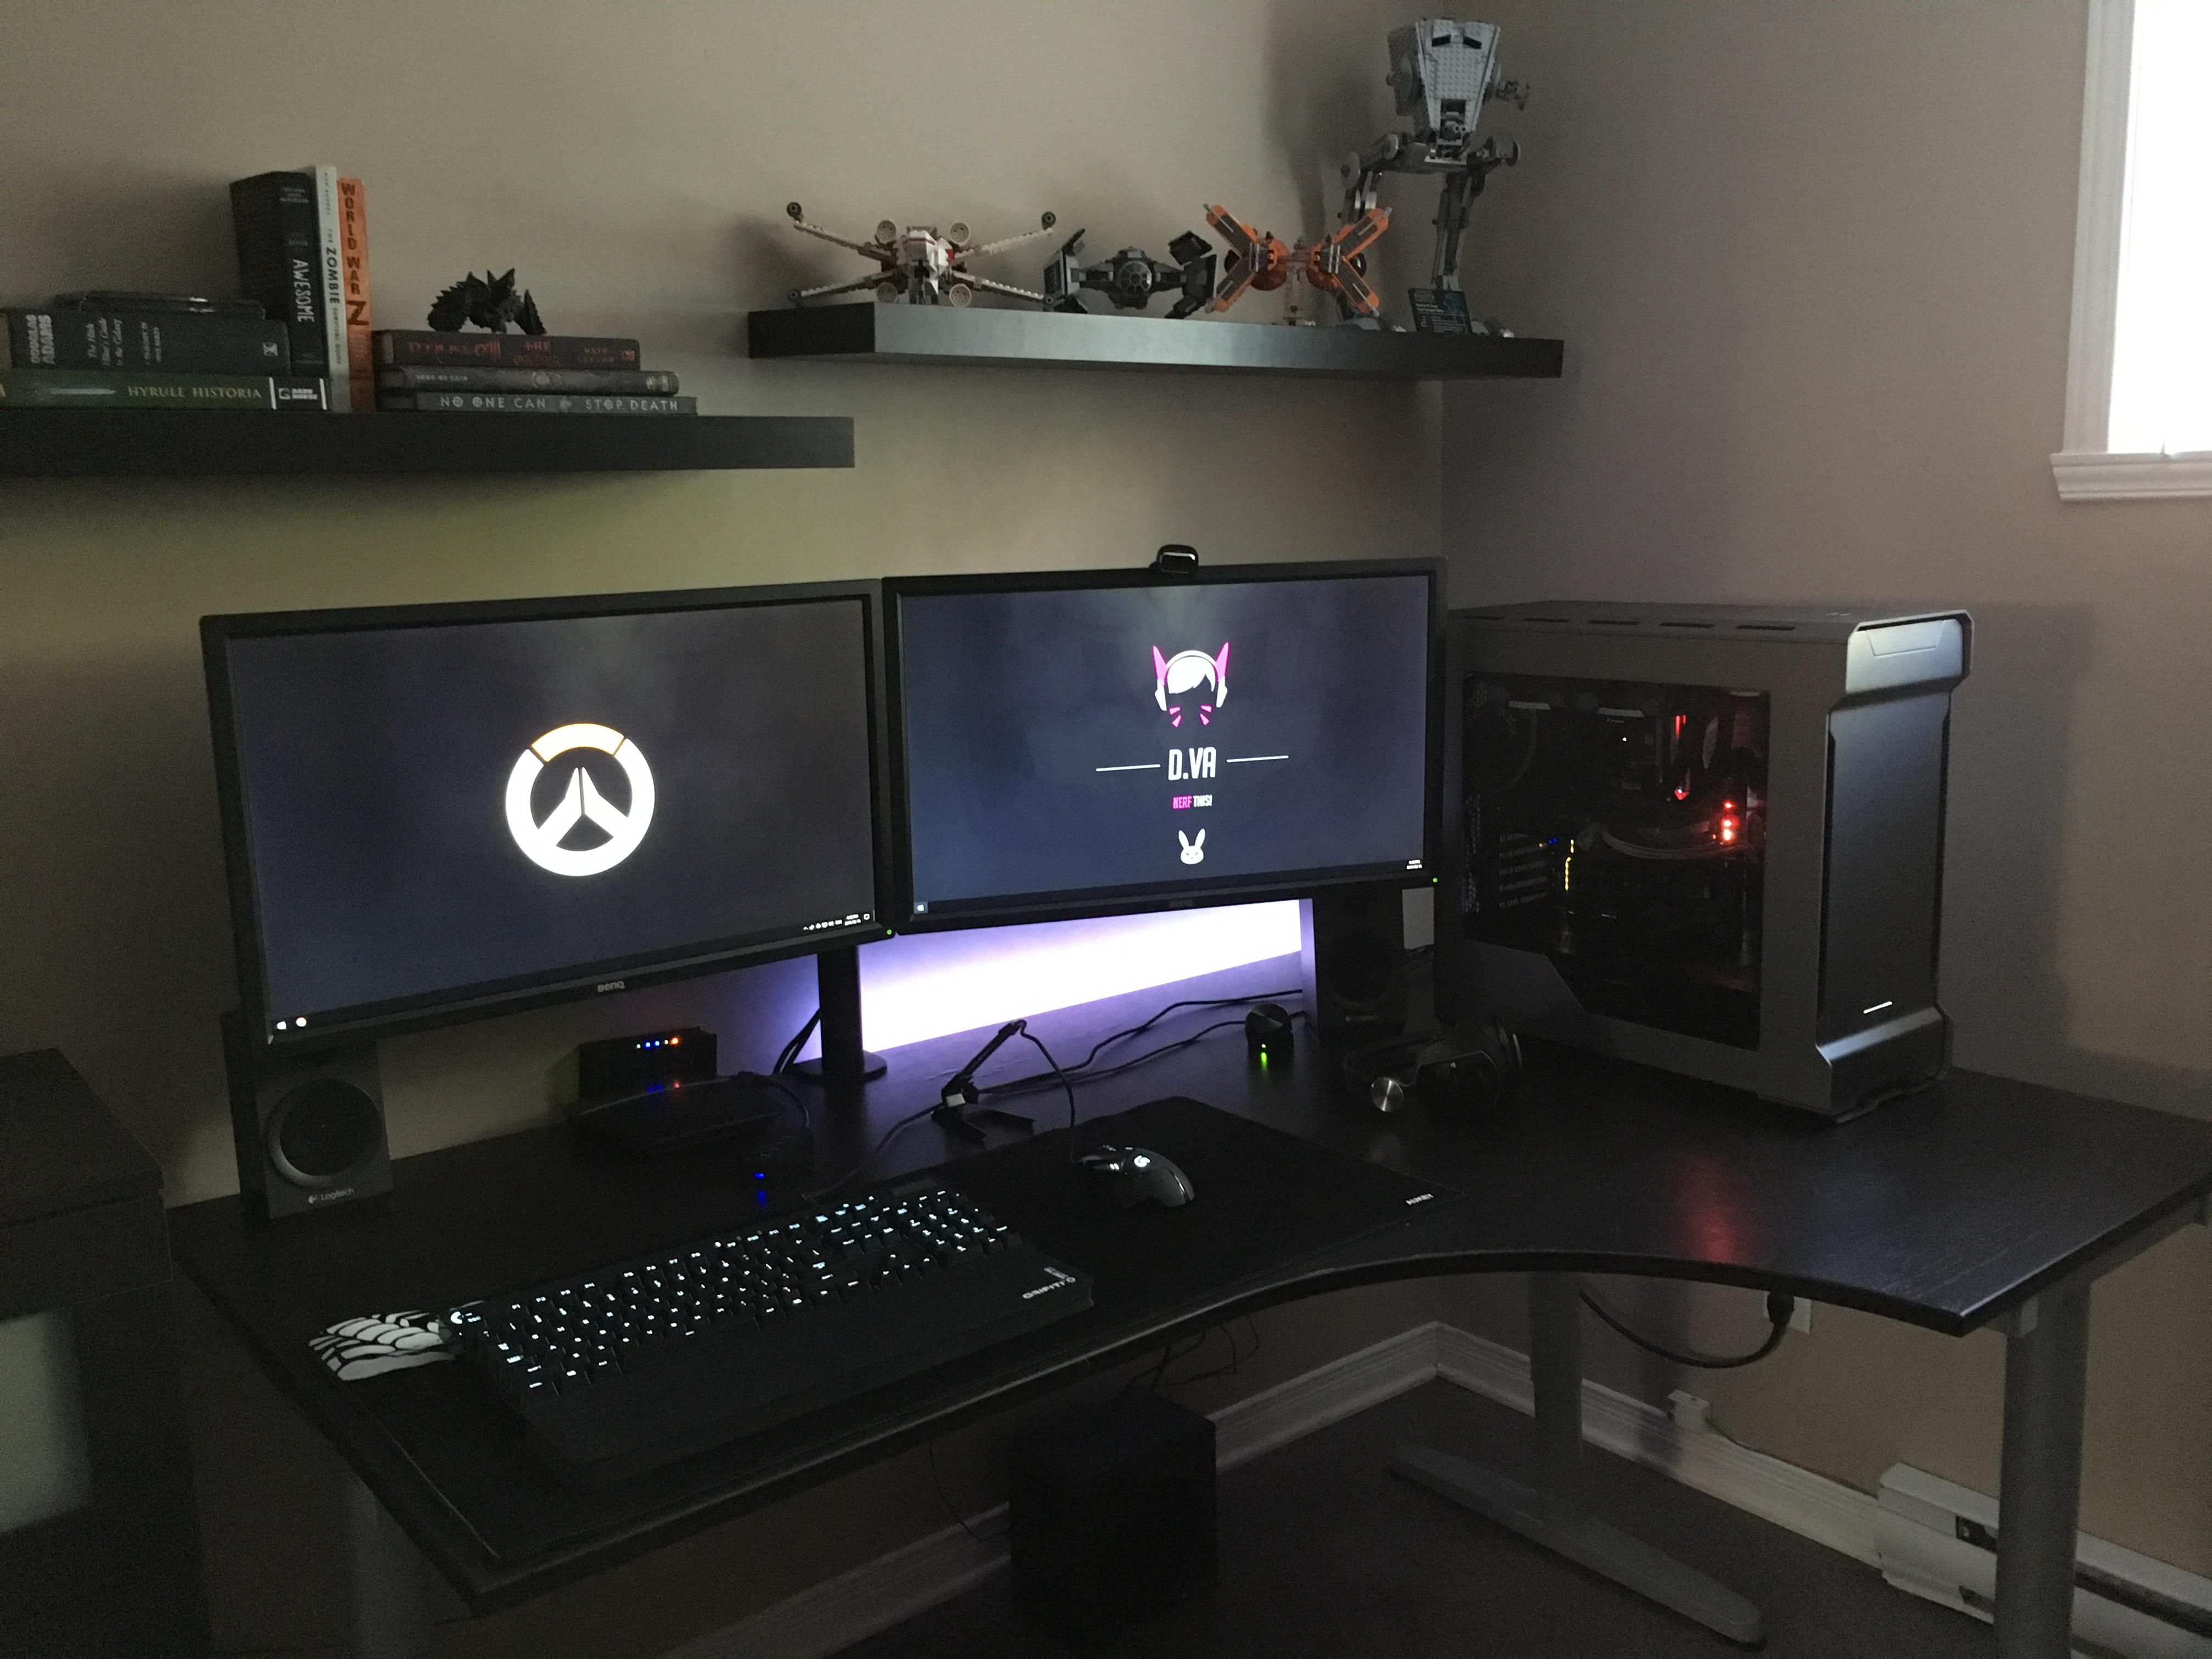 Refreshed My Setup With A Some Sexy Upgrades Pc Setupdesk